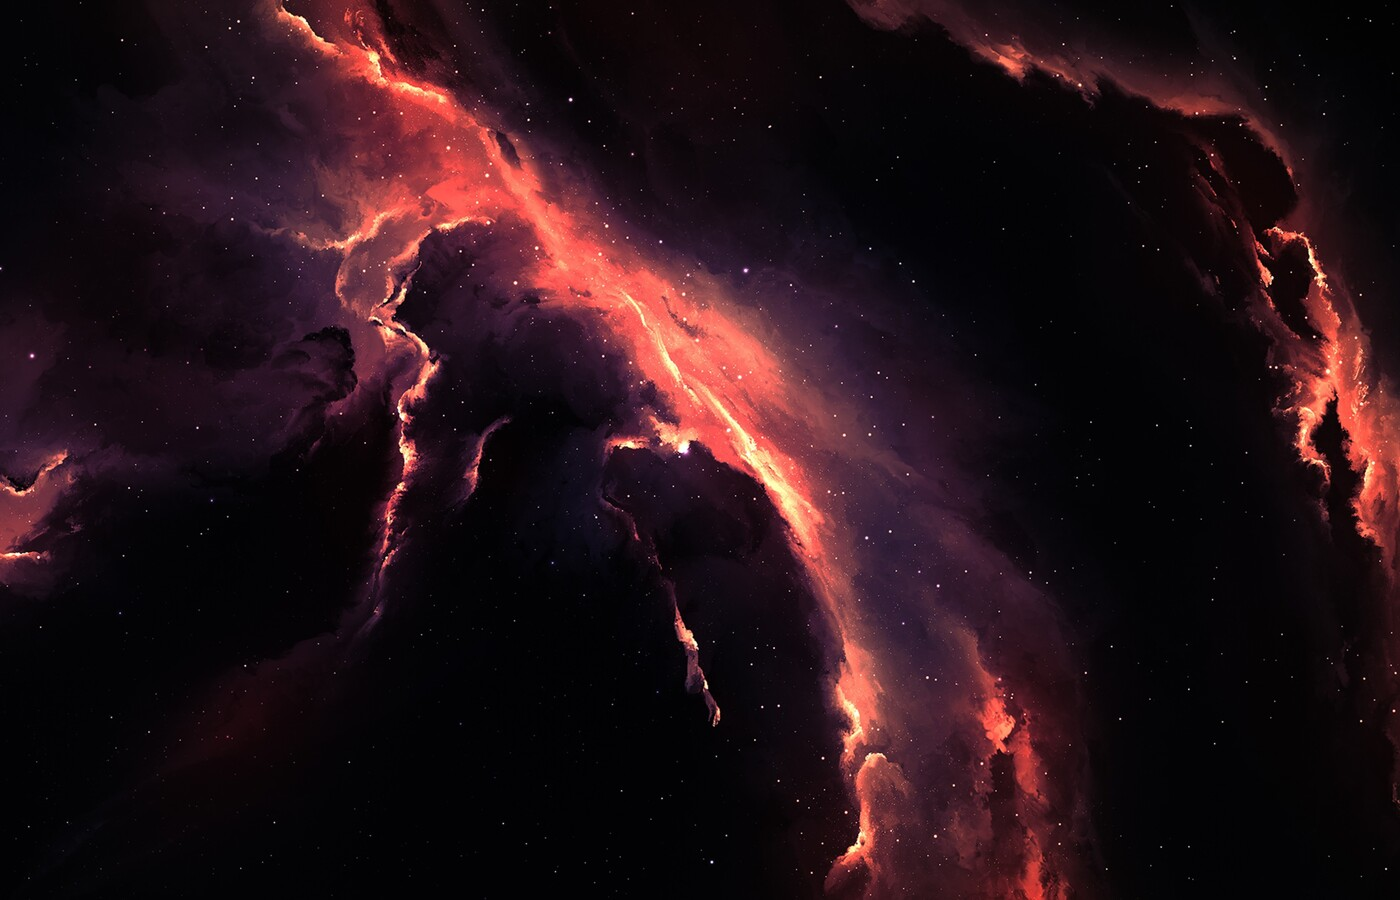 nebula-3d-digital-art-do.jpg